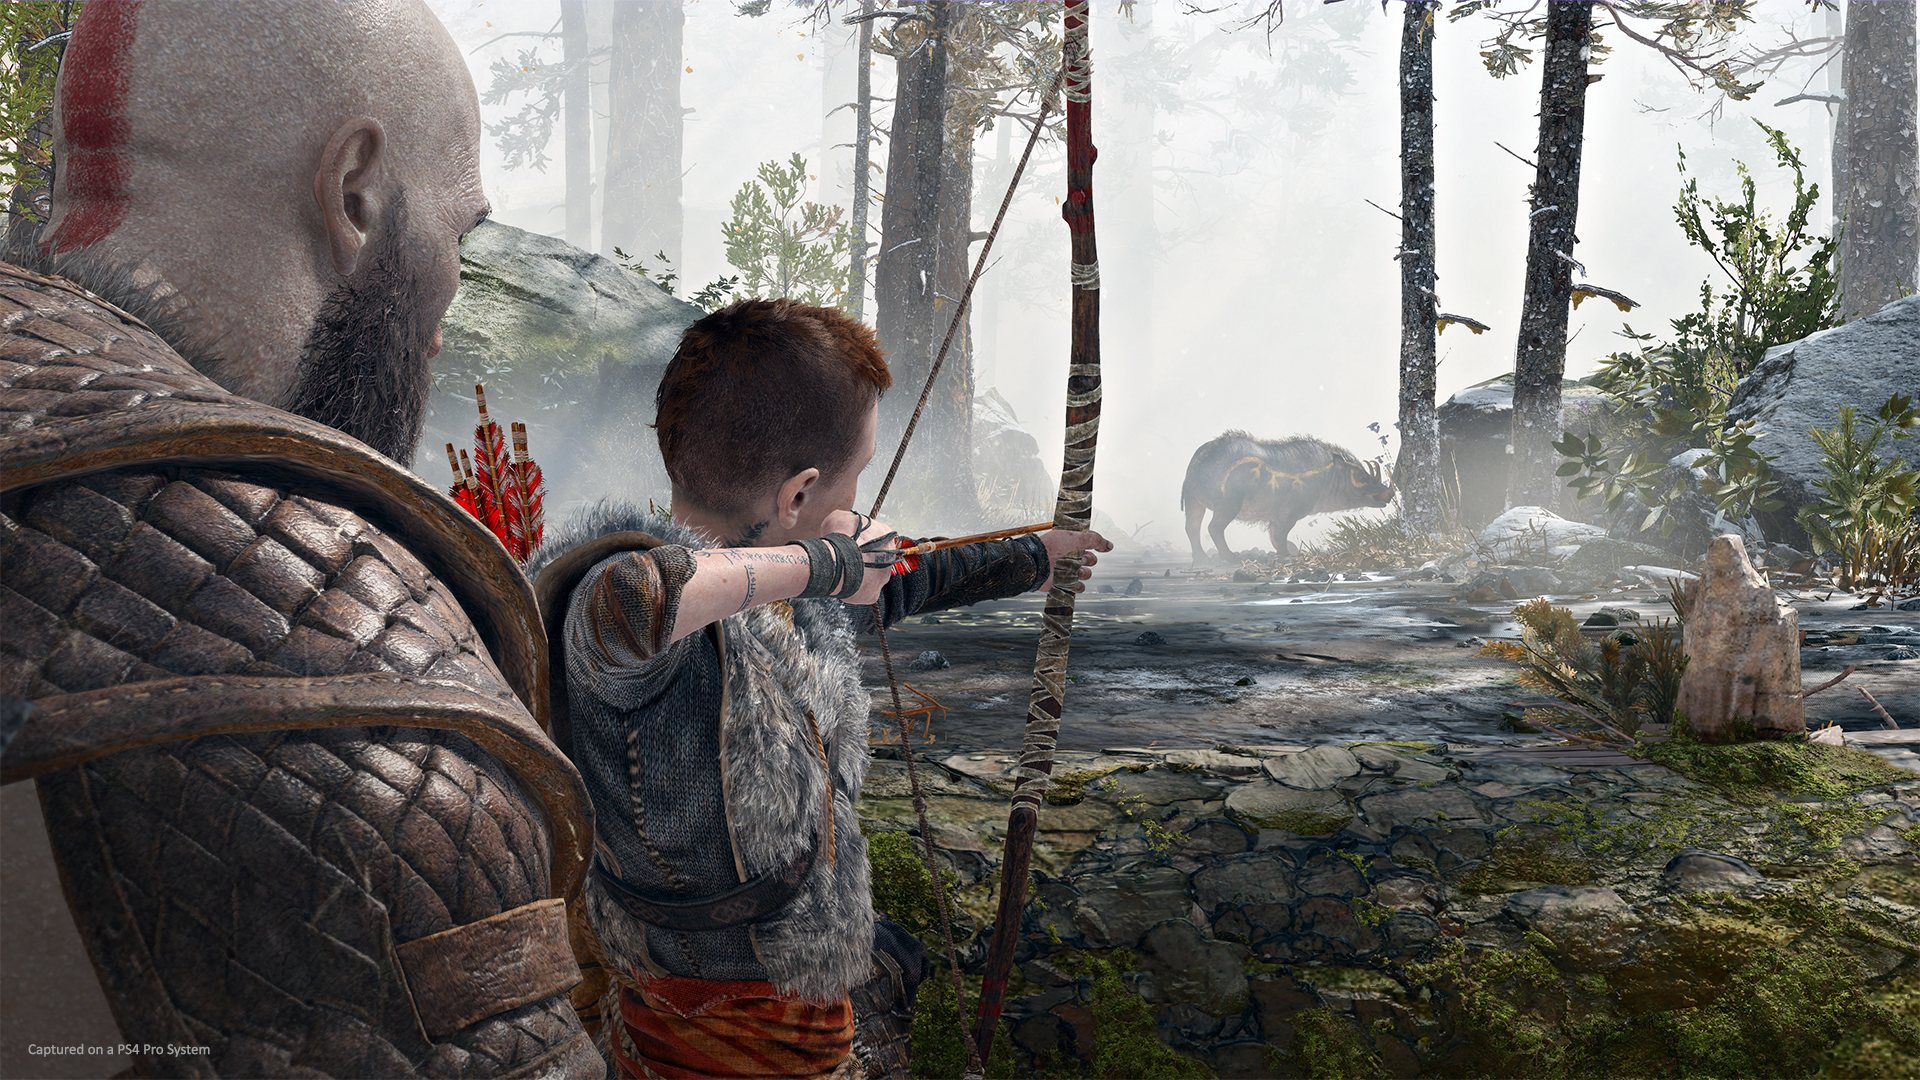 'God of War' director's video shows the human side of making games